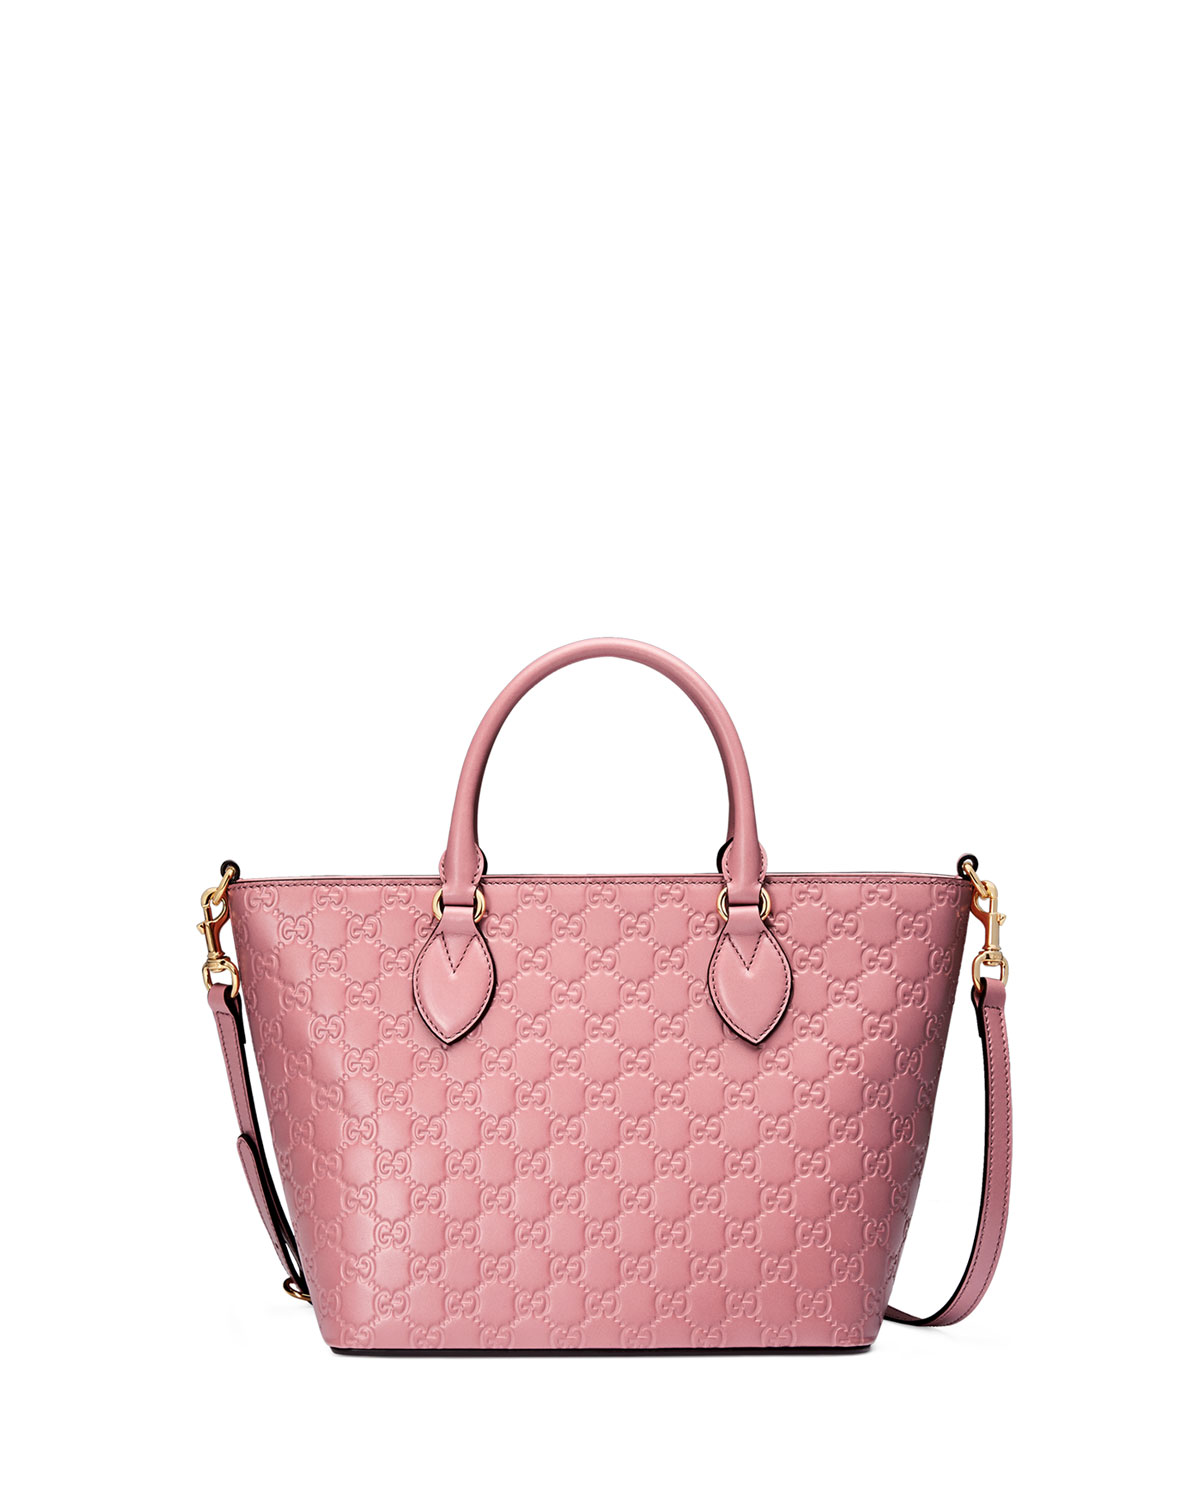 9e523d2f9098 Gucci Guccissima Small Leather Tote Bag